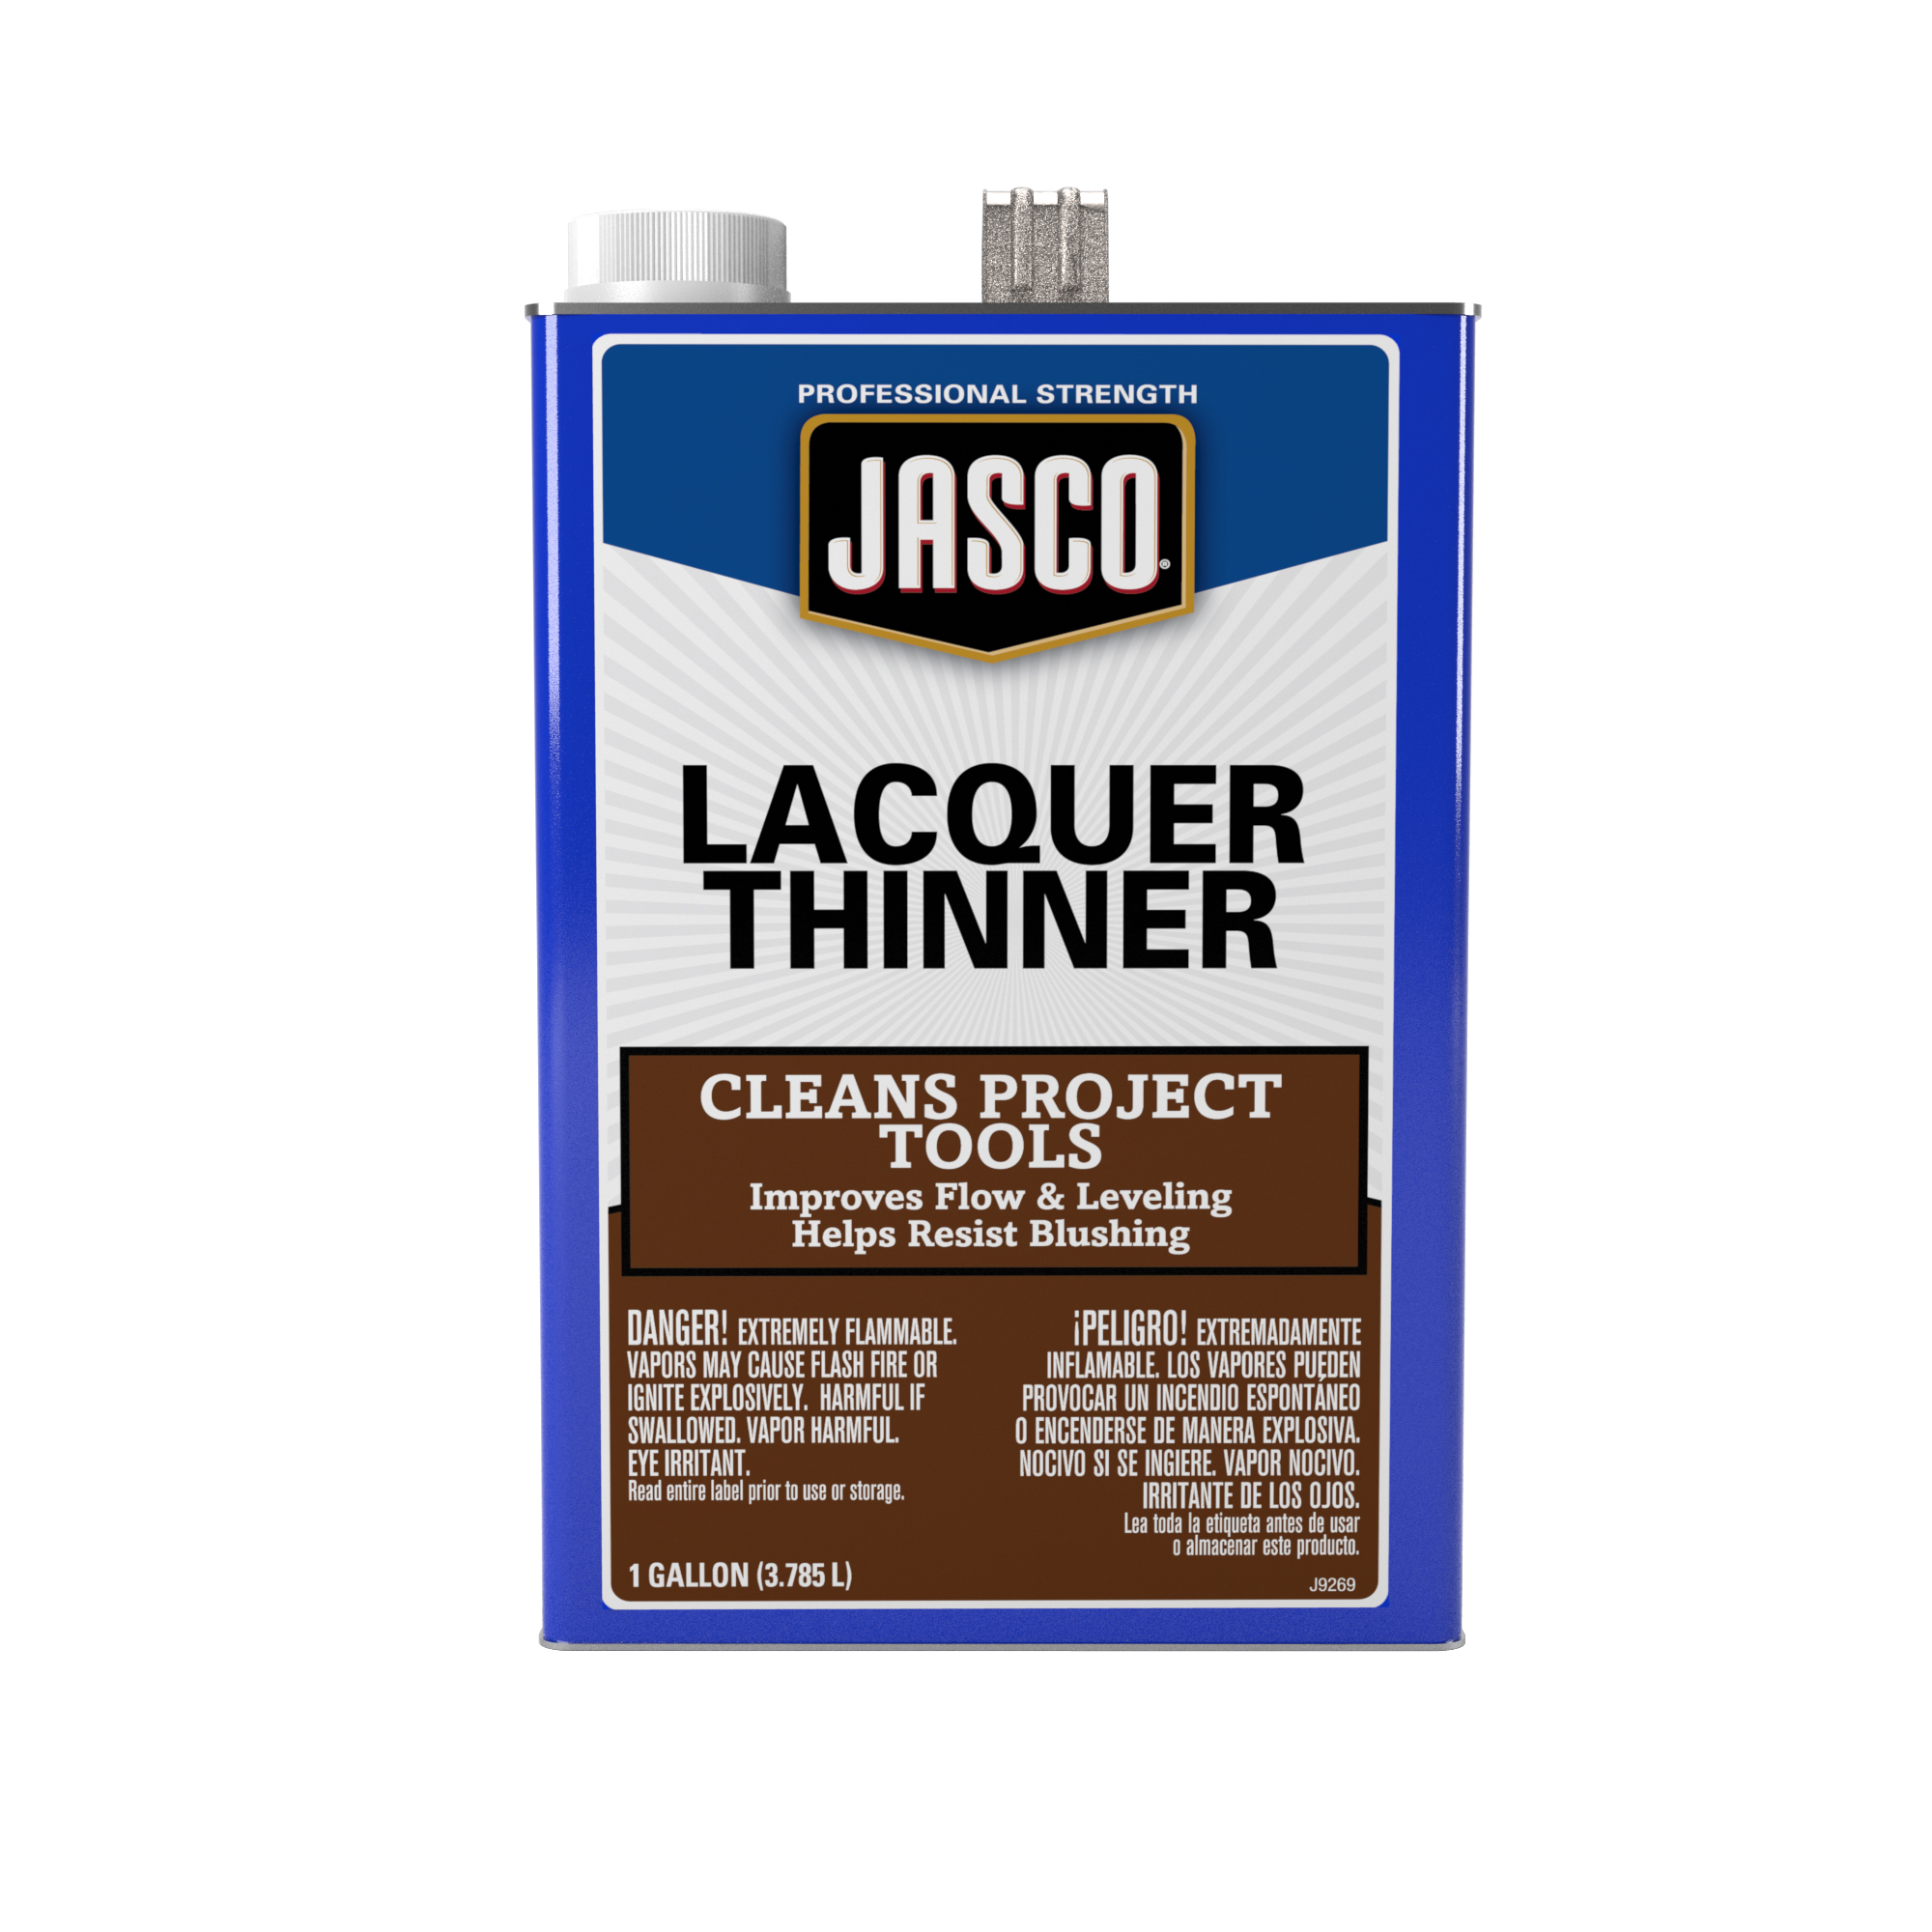 Lacquer Thinner for California South Coast